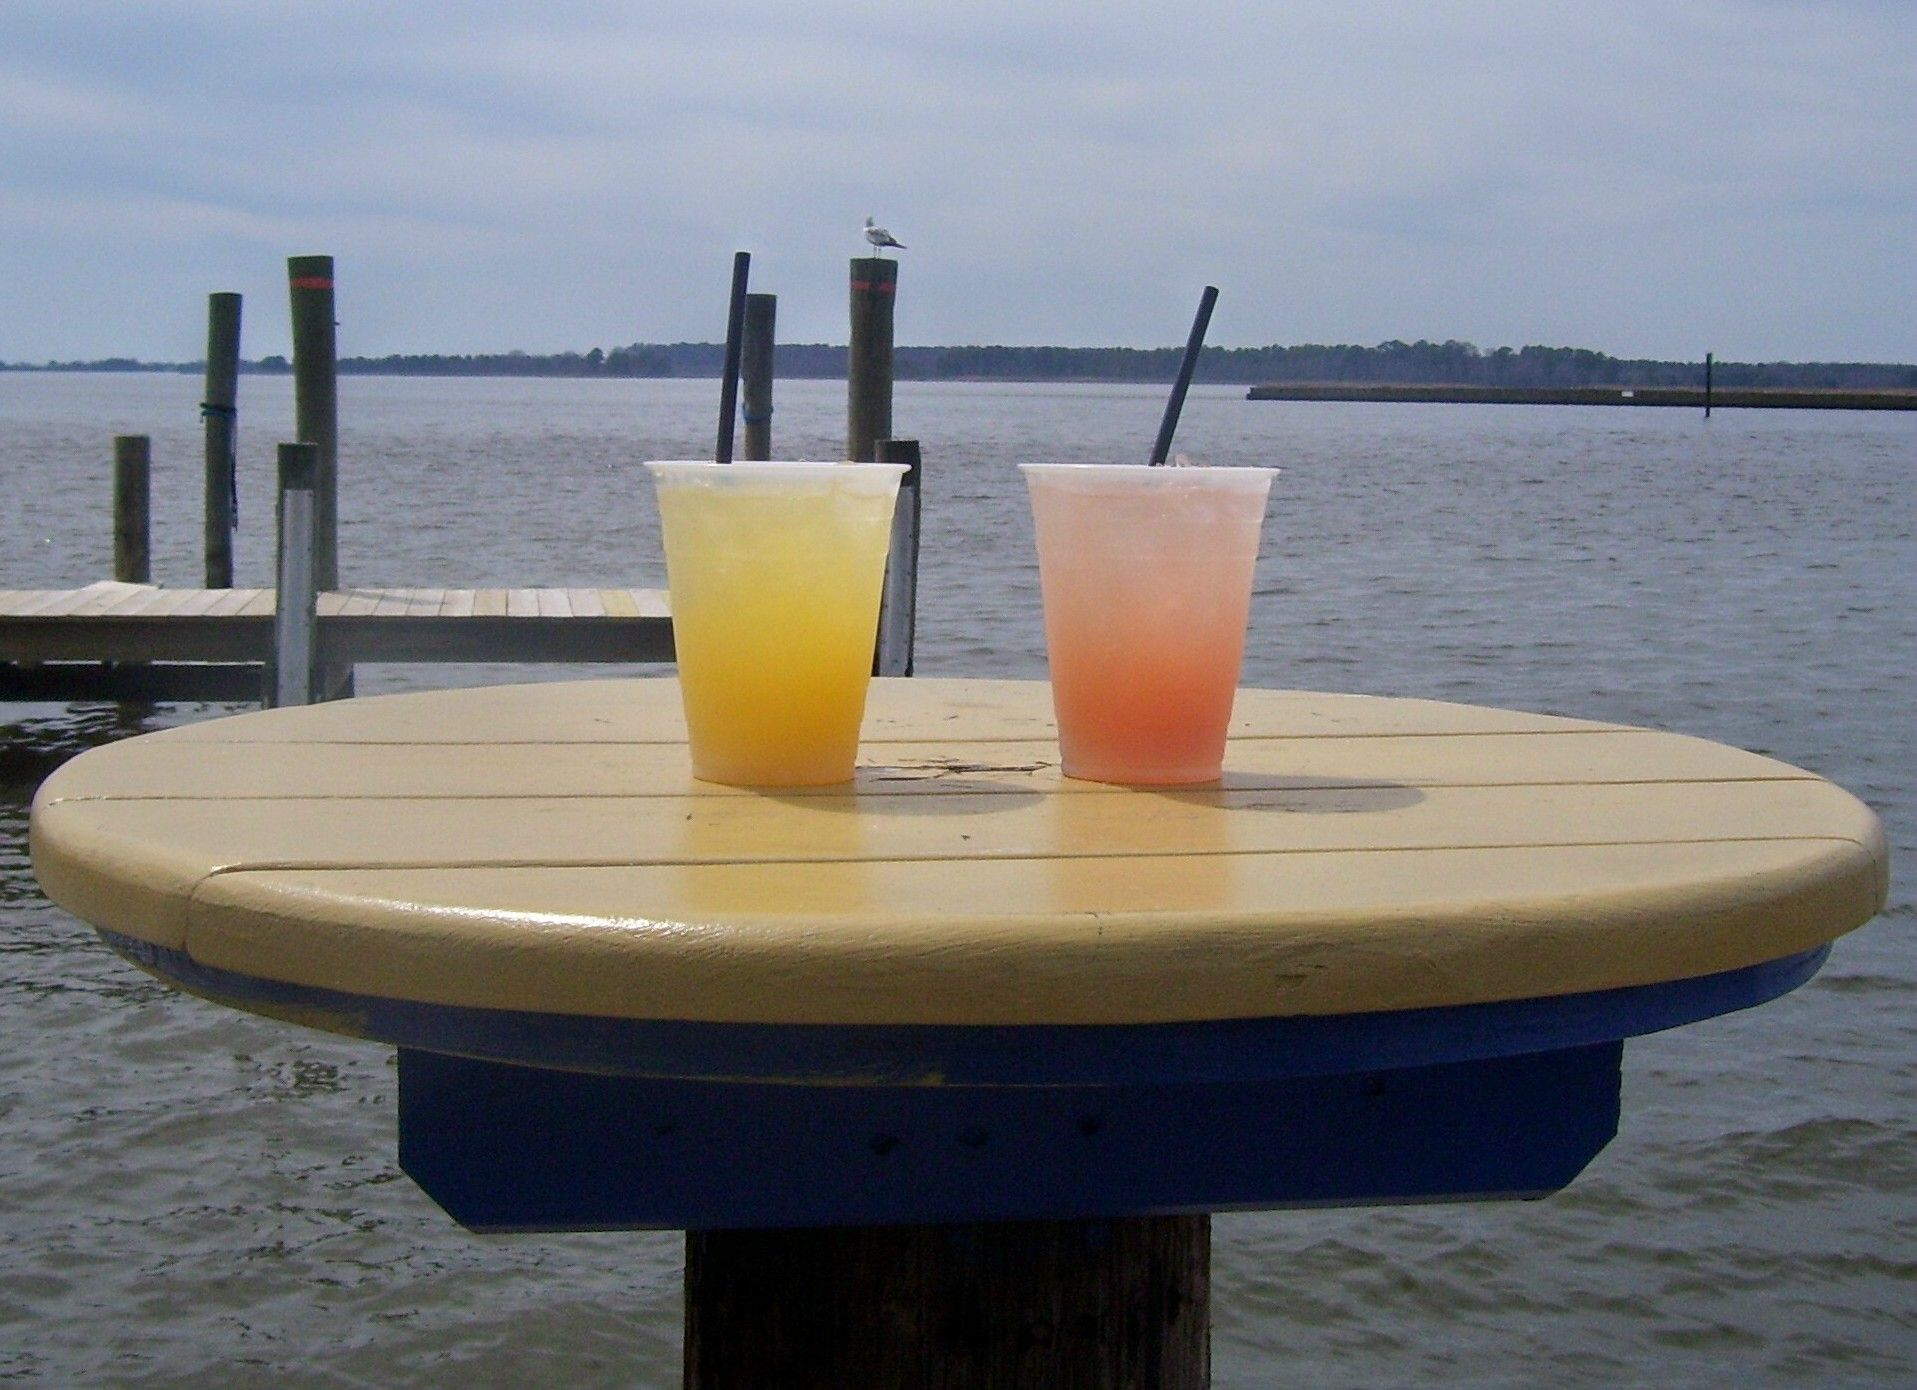 At The Jetty in Grasonville, MD.  I'm getting a little concerned about how that seagull is eyeing up our grapefruit and orange crushes.